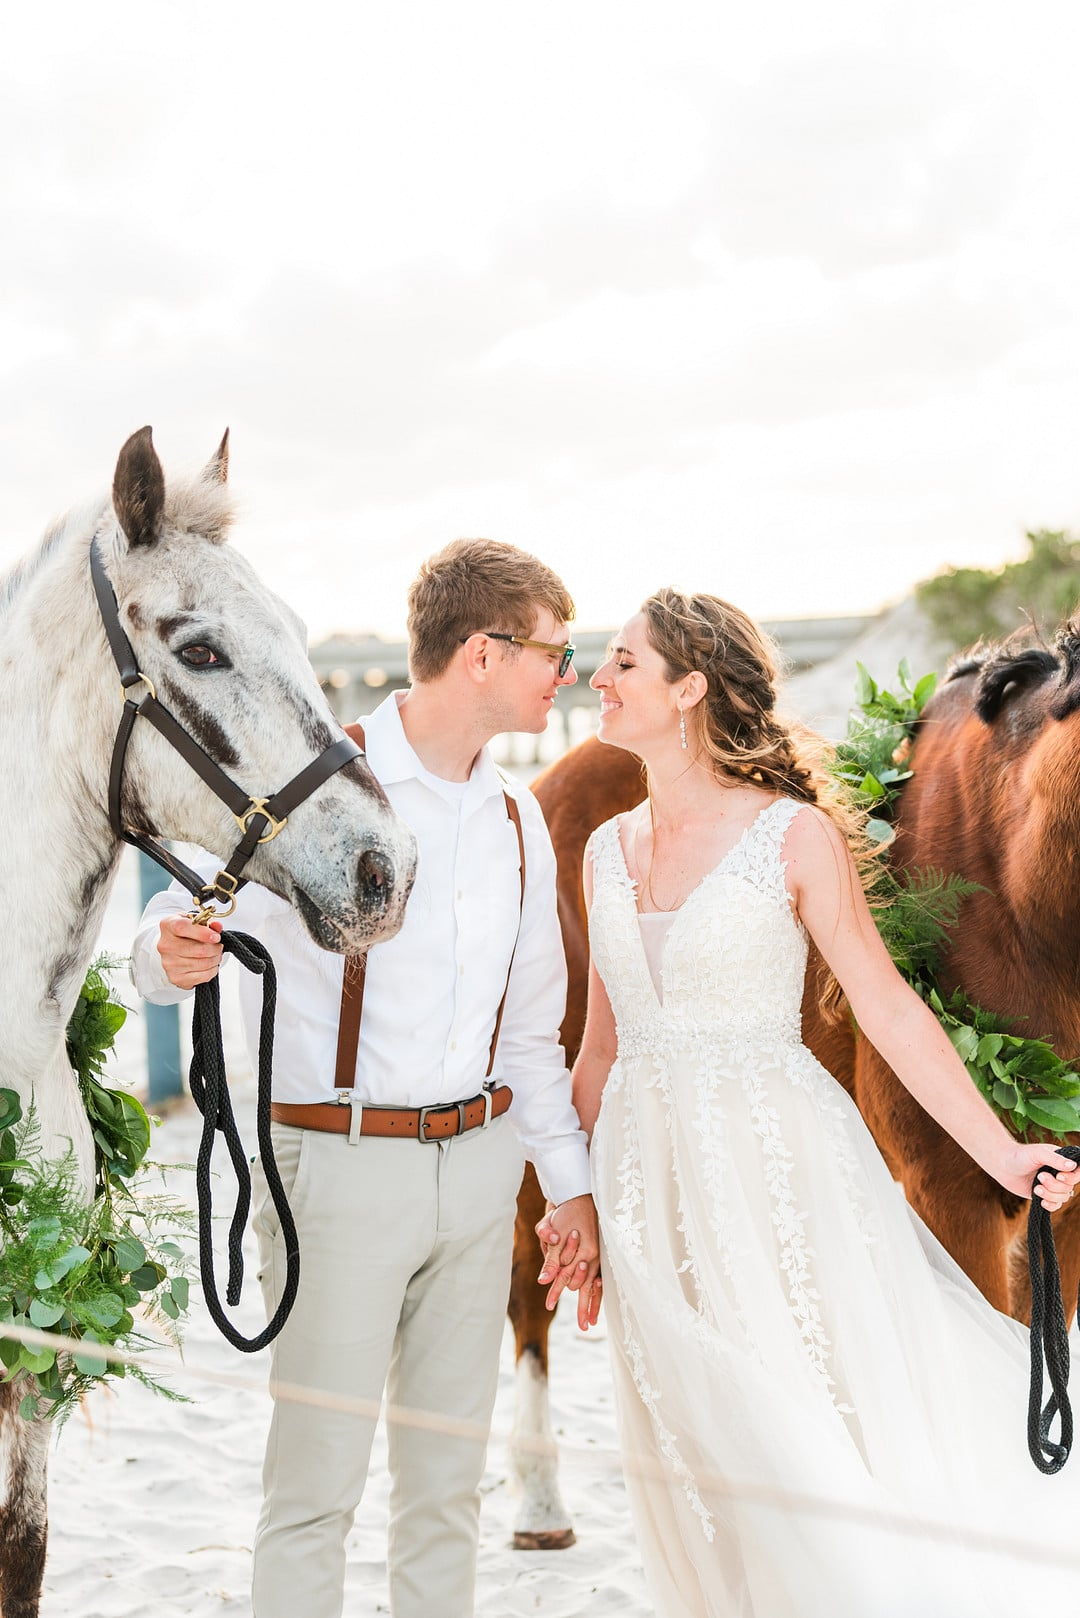 Romantic, Spring Styled Wedding with Horses on the Beach_Christine Austin Photography_©christineaustinphotography_2021_RomanticBeachStyledShoot_Horses_17_low